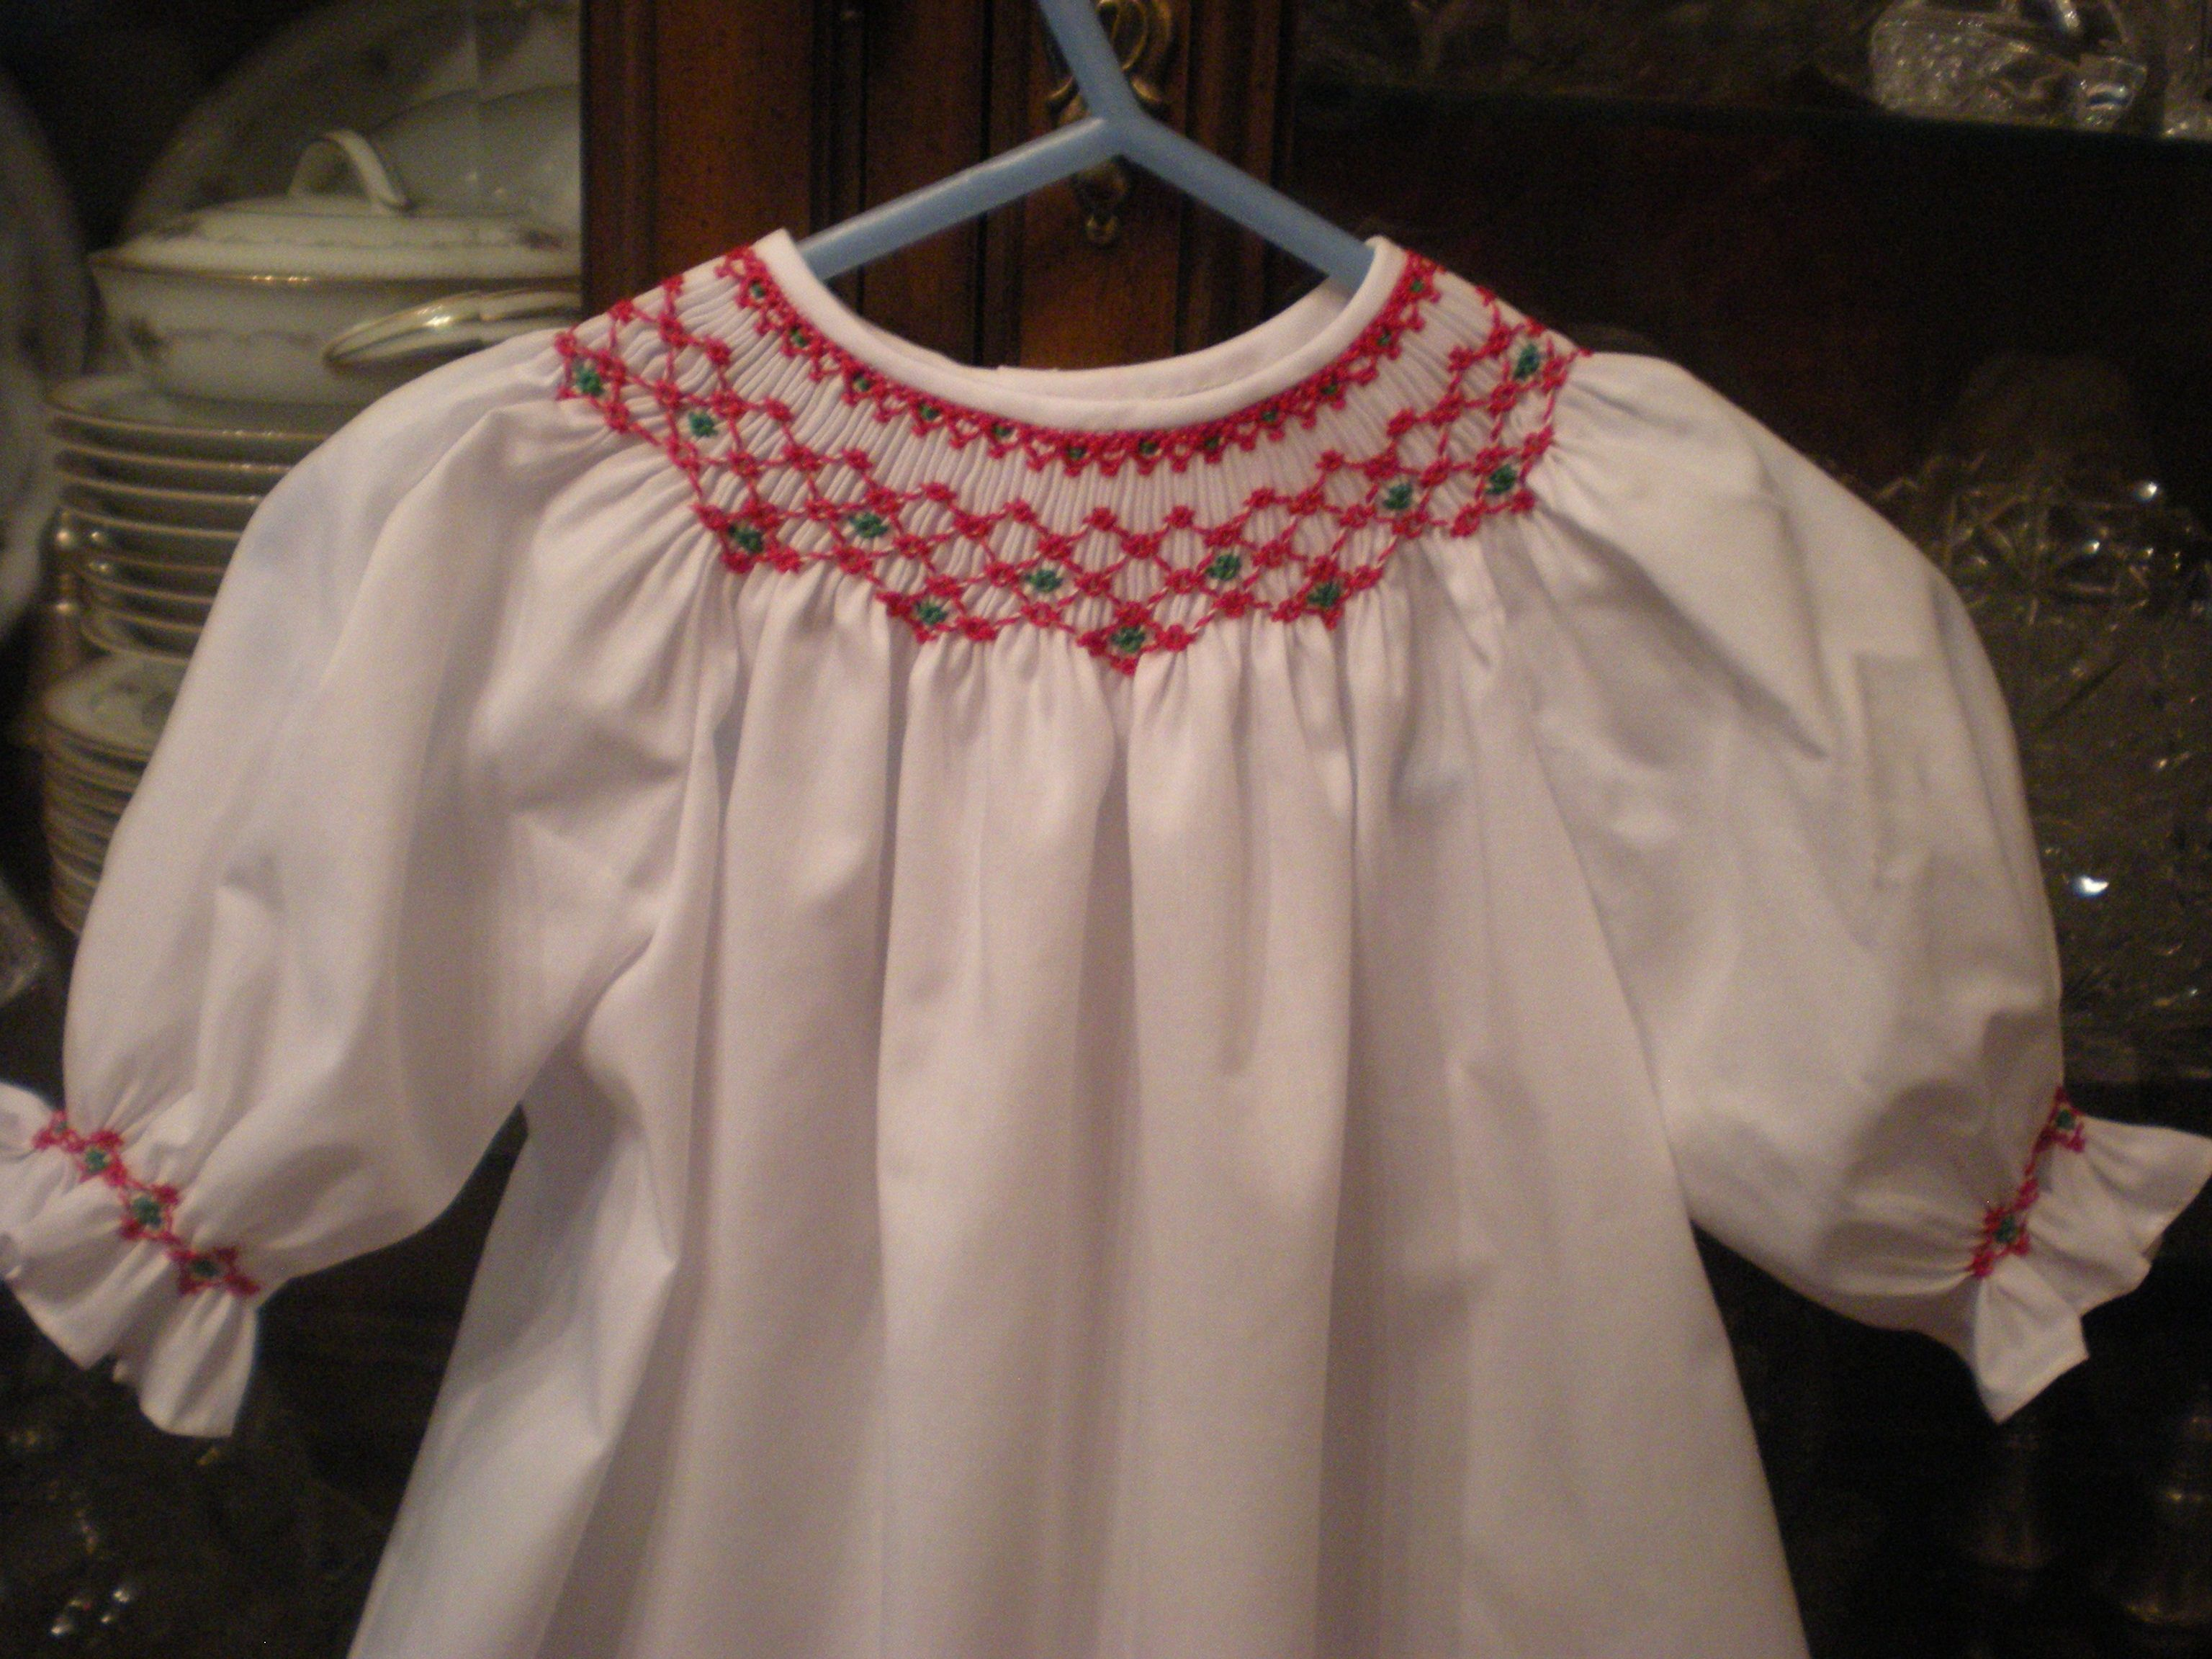 Smocked baby Christmas dress gown Hand smocked with red and green